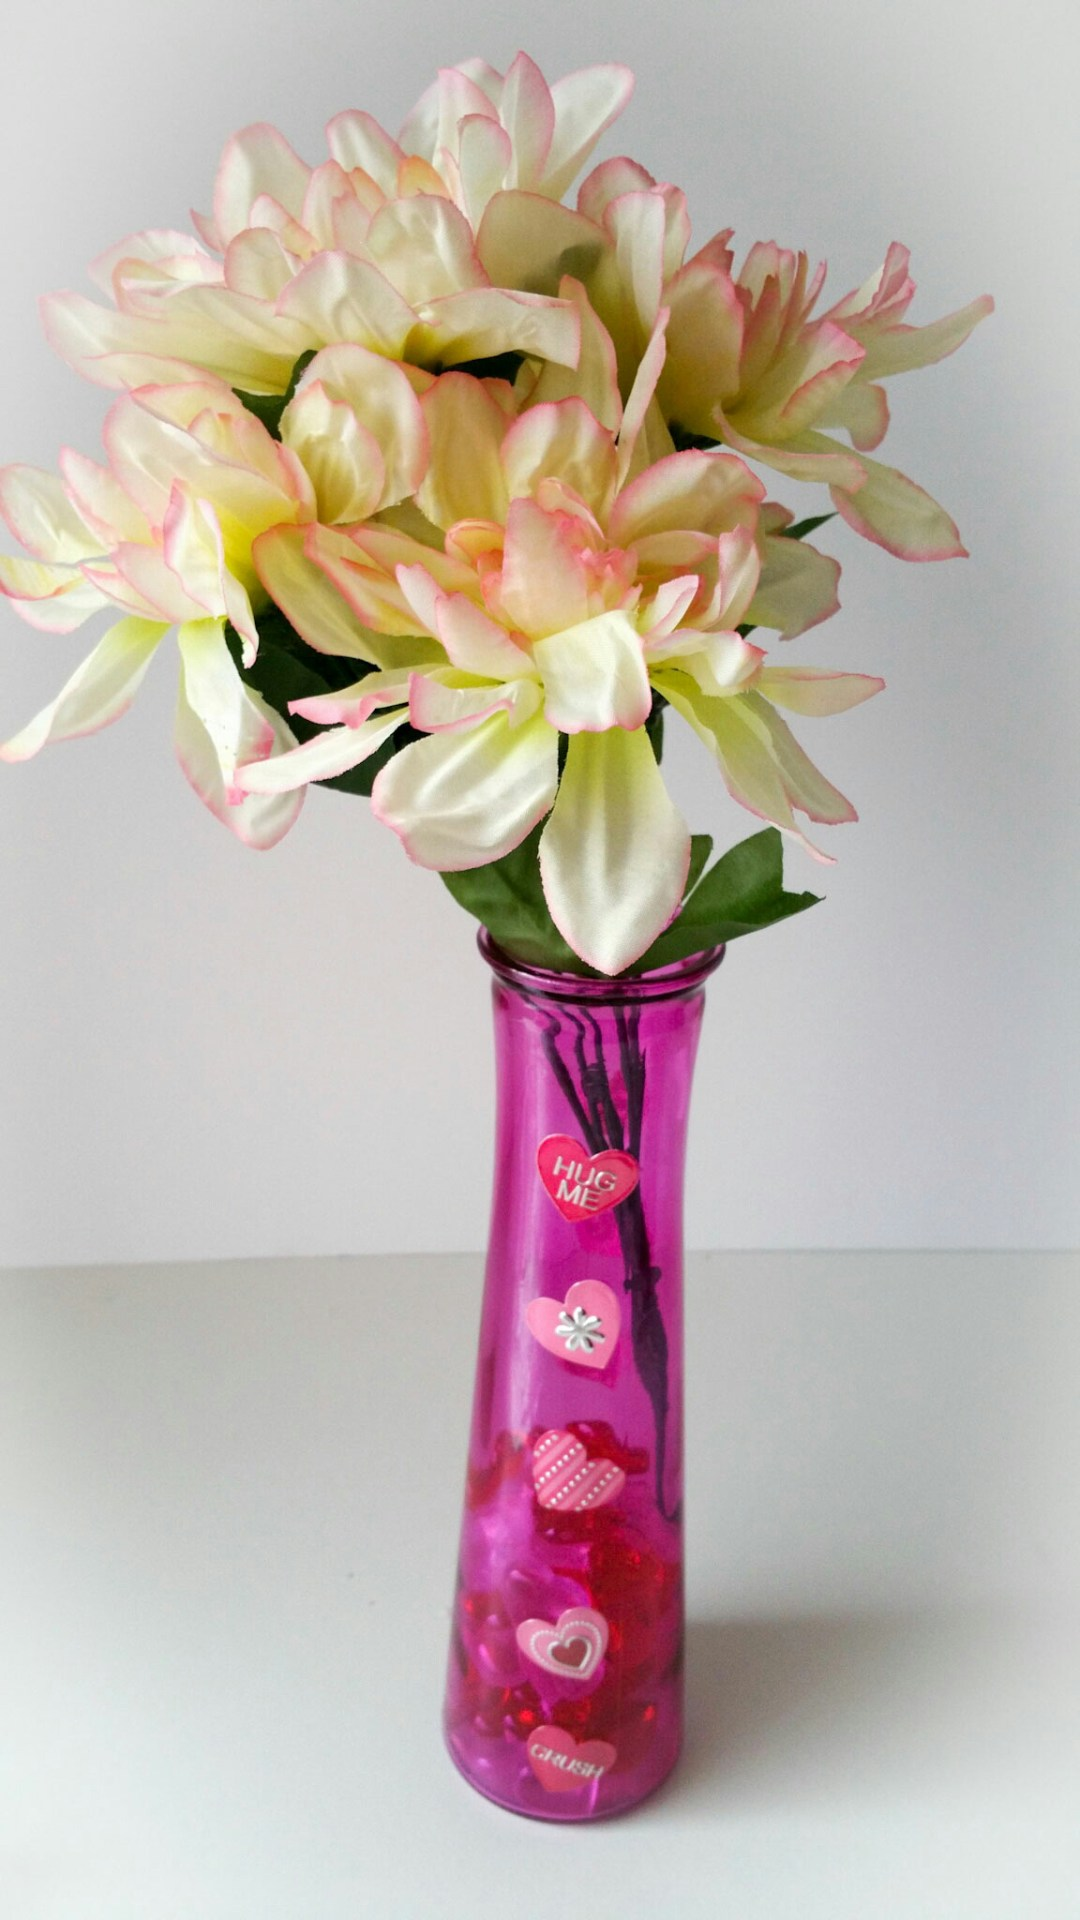 Super-Cute-DIY-Heart-Vase-Bouquet-Eighteen-LiWBF